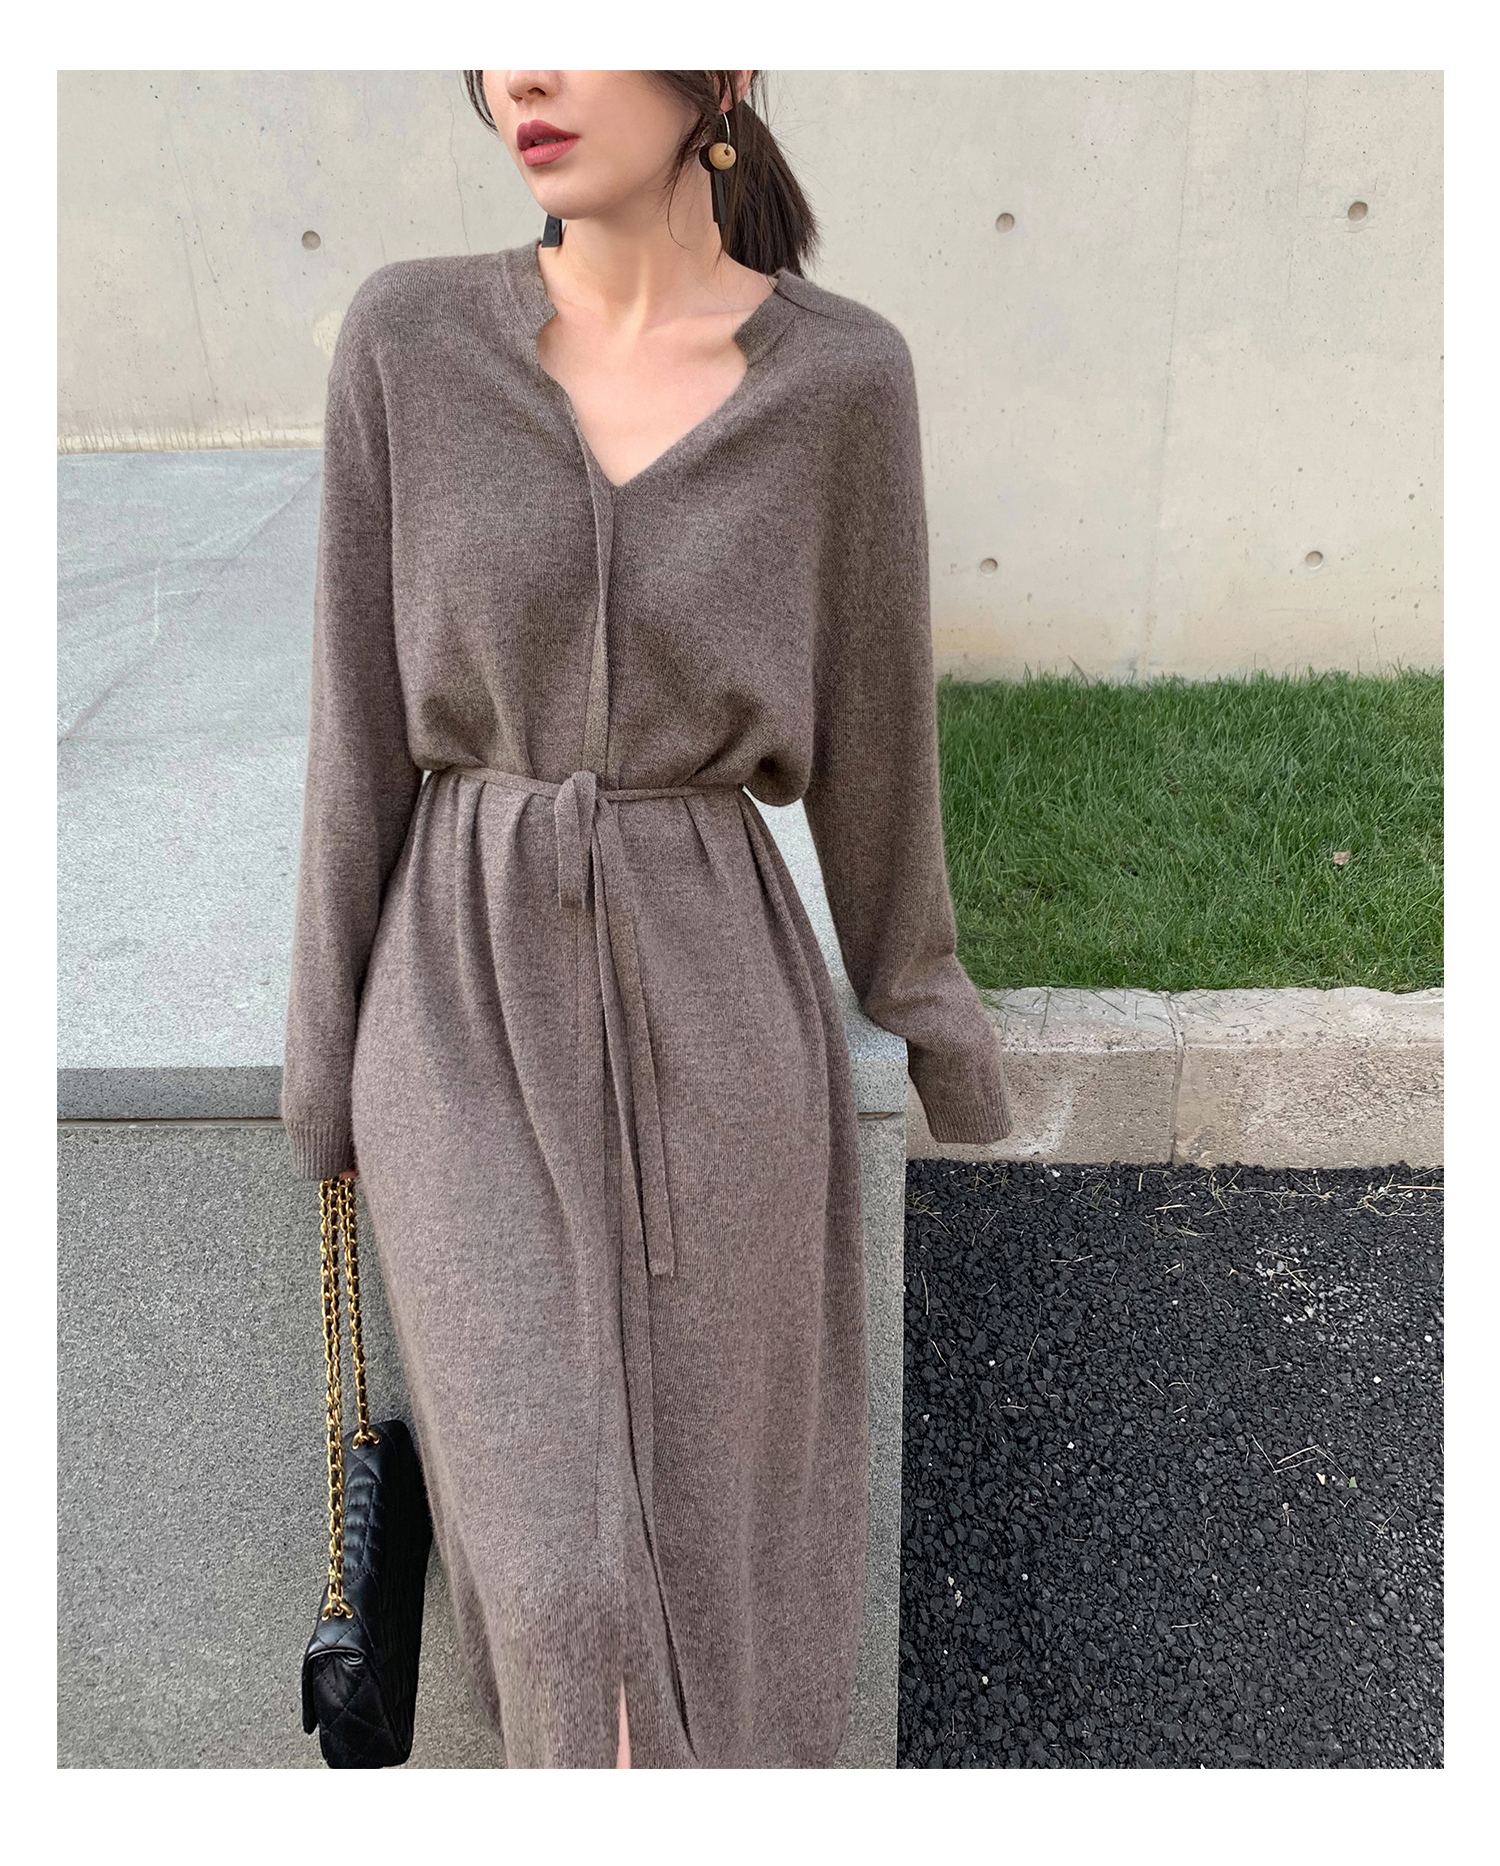 Woman dress elegant pure color 2020 autumn new loose mid-length knit v-neck full sleeve casual cardigan dress female платье